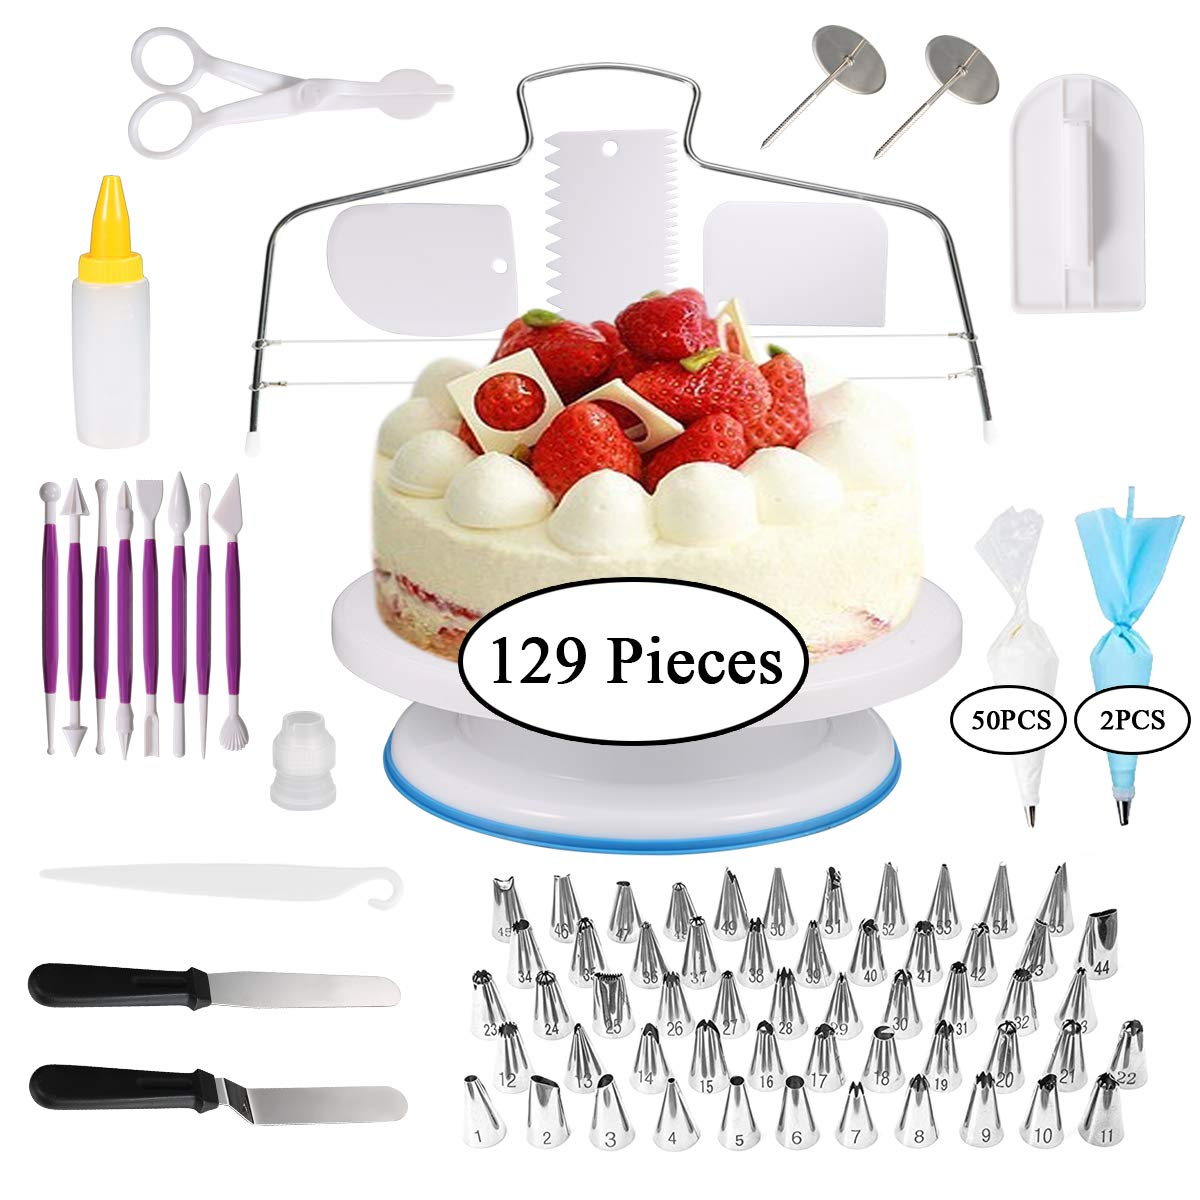 Cake Decorating Supplies, 129 PCS Cake Decorating Kit Set for Beginners, Baking Supplies Set With Rotating Turntable Stand, Icing Piping Tips & Pastry Bags, Icing Spatula & Smoother